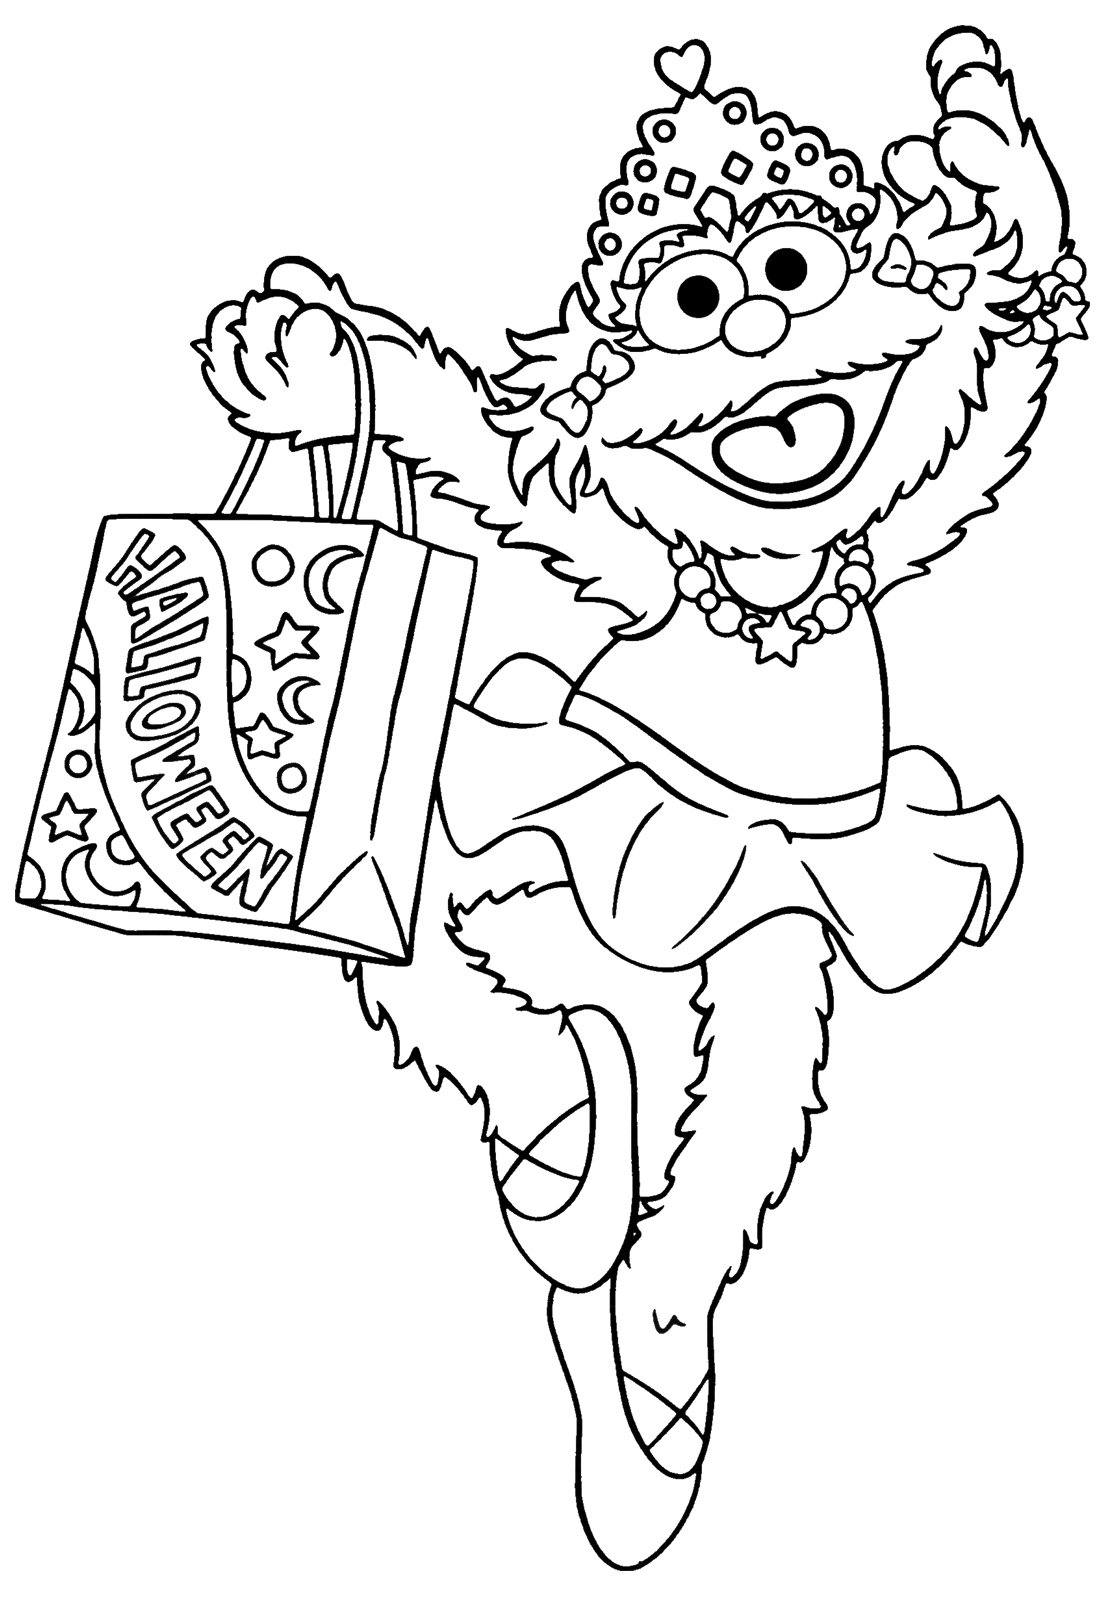 Sesame street coloring pages to